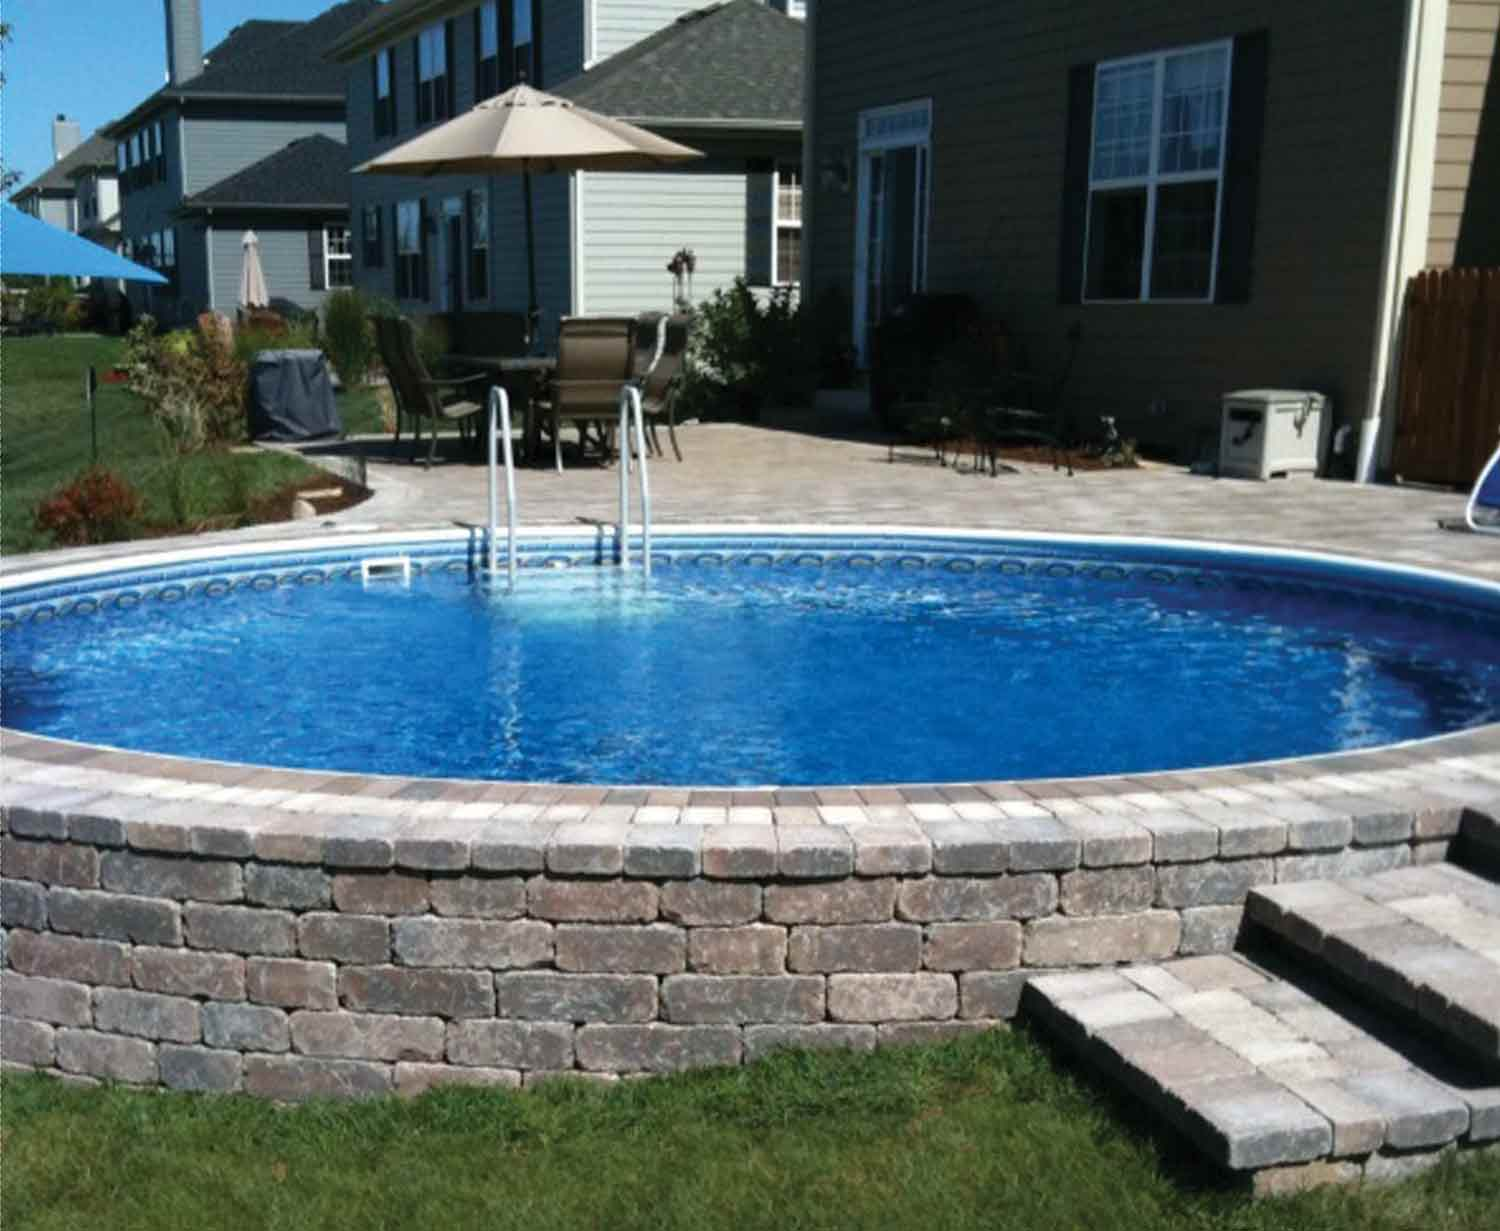 Above ground pool wayne mi in ground pools wayne mi - Images of above ground pools ...